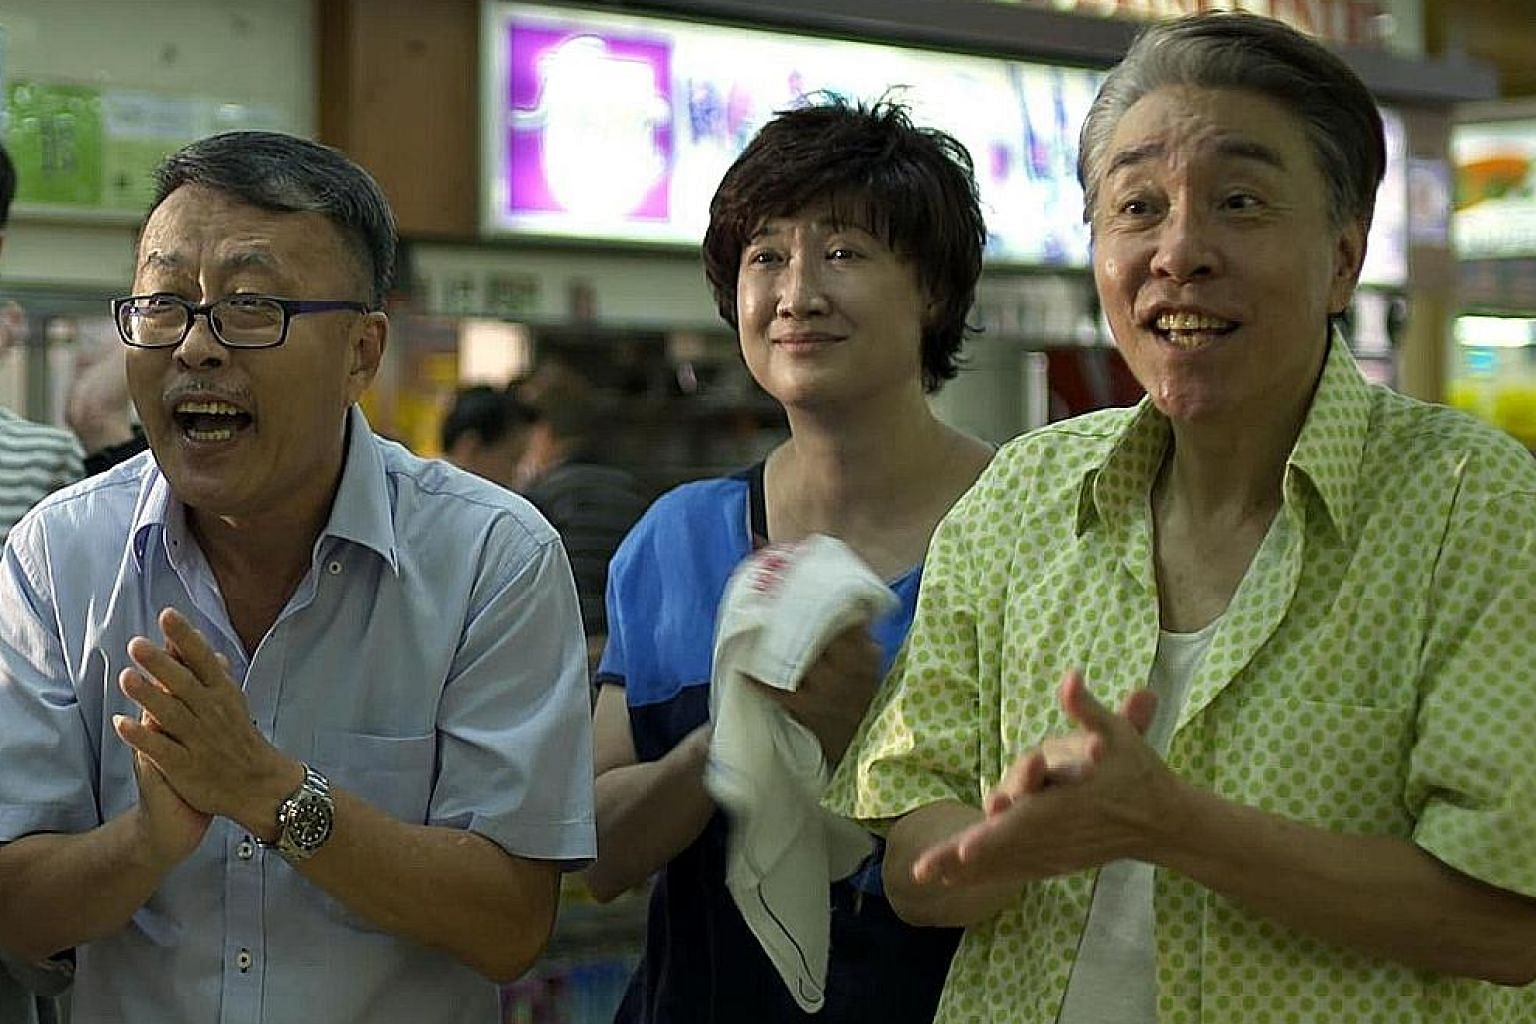 Eat Already? 2 (starring above from left, Ye Shipin, Hong Huifang and Chen Shucheng) is a dialect drama set in an alternate Singapore, while Kuo Shu-yao is a moonlighting temple medium who talks to ghosts in Hokkien.